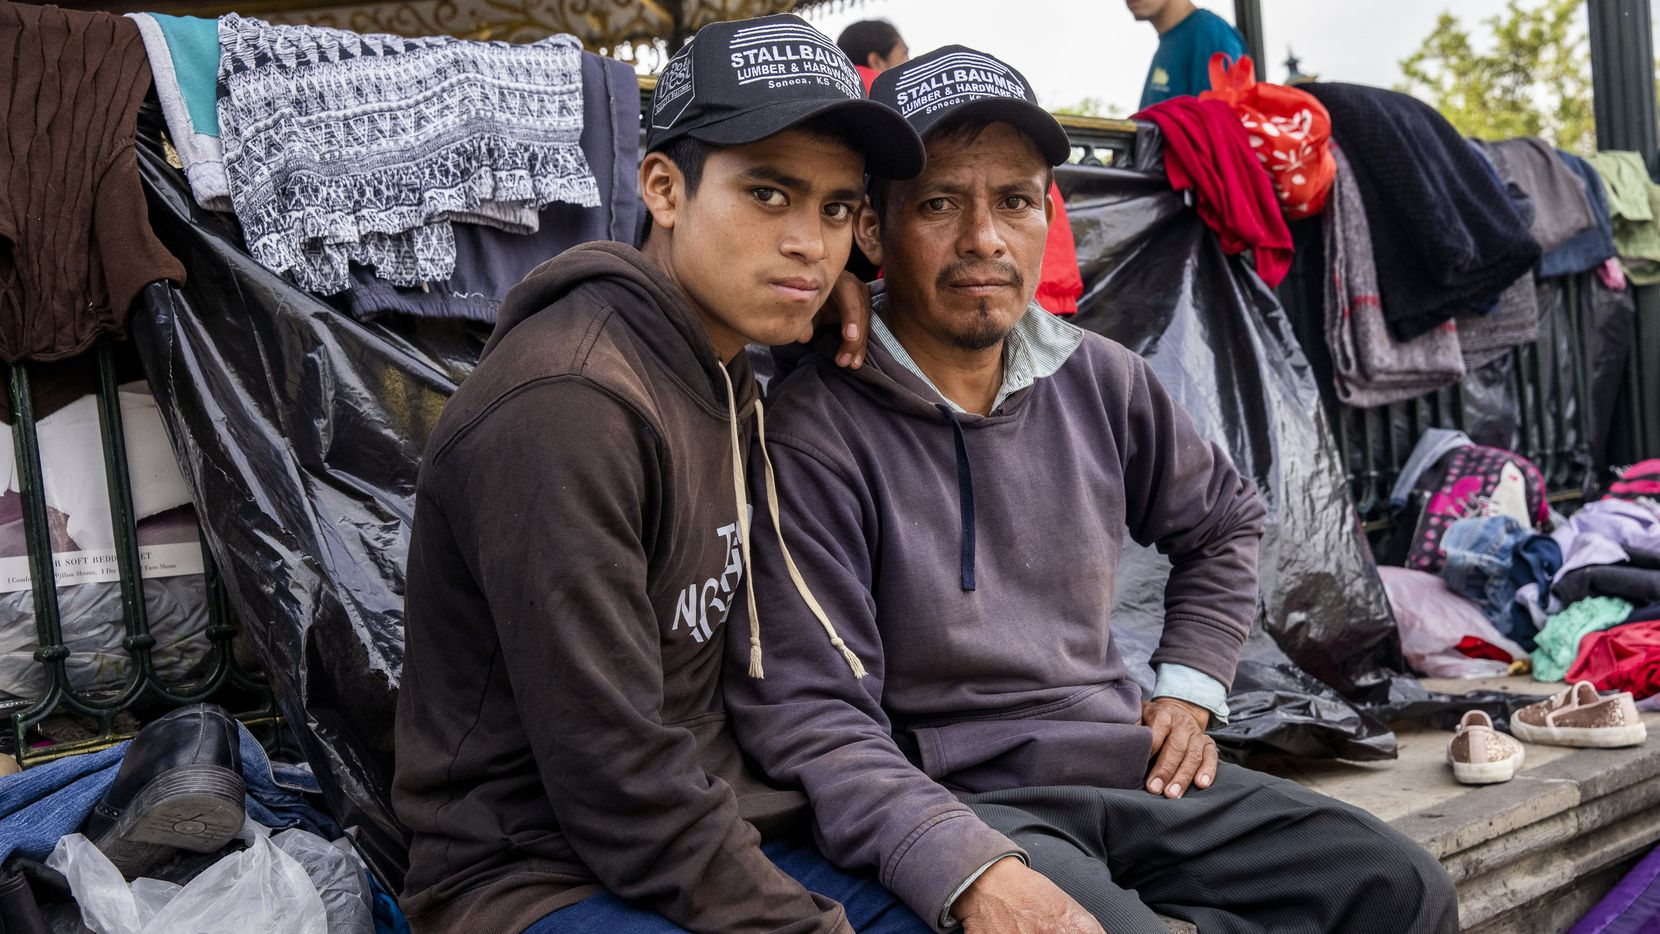 Guatemalan migrant Antulio Bamaca, right, and his 16-year-old son Everardo pose for a portrait from where they currently live at a gazebo in a public square in the Mexican border city of Reynosa on Wednesday, March 31, 2021. Expelled migrants have resorted to sleeping at the gazebo as the U.S. continues to implement Title 42 — a pandemic-related public order still in place and left over from the Trump administration.